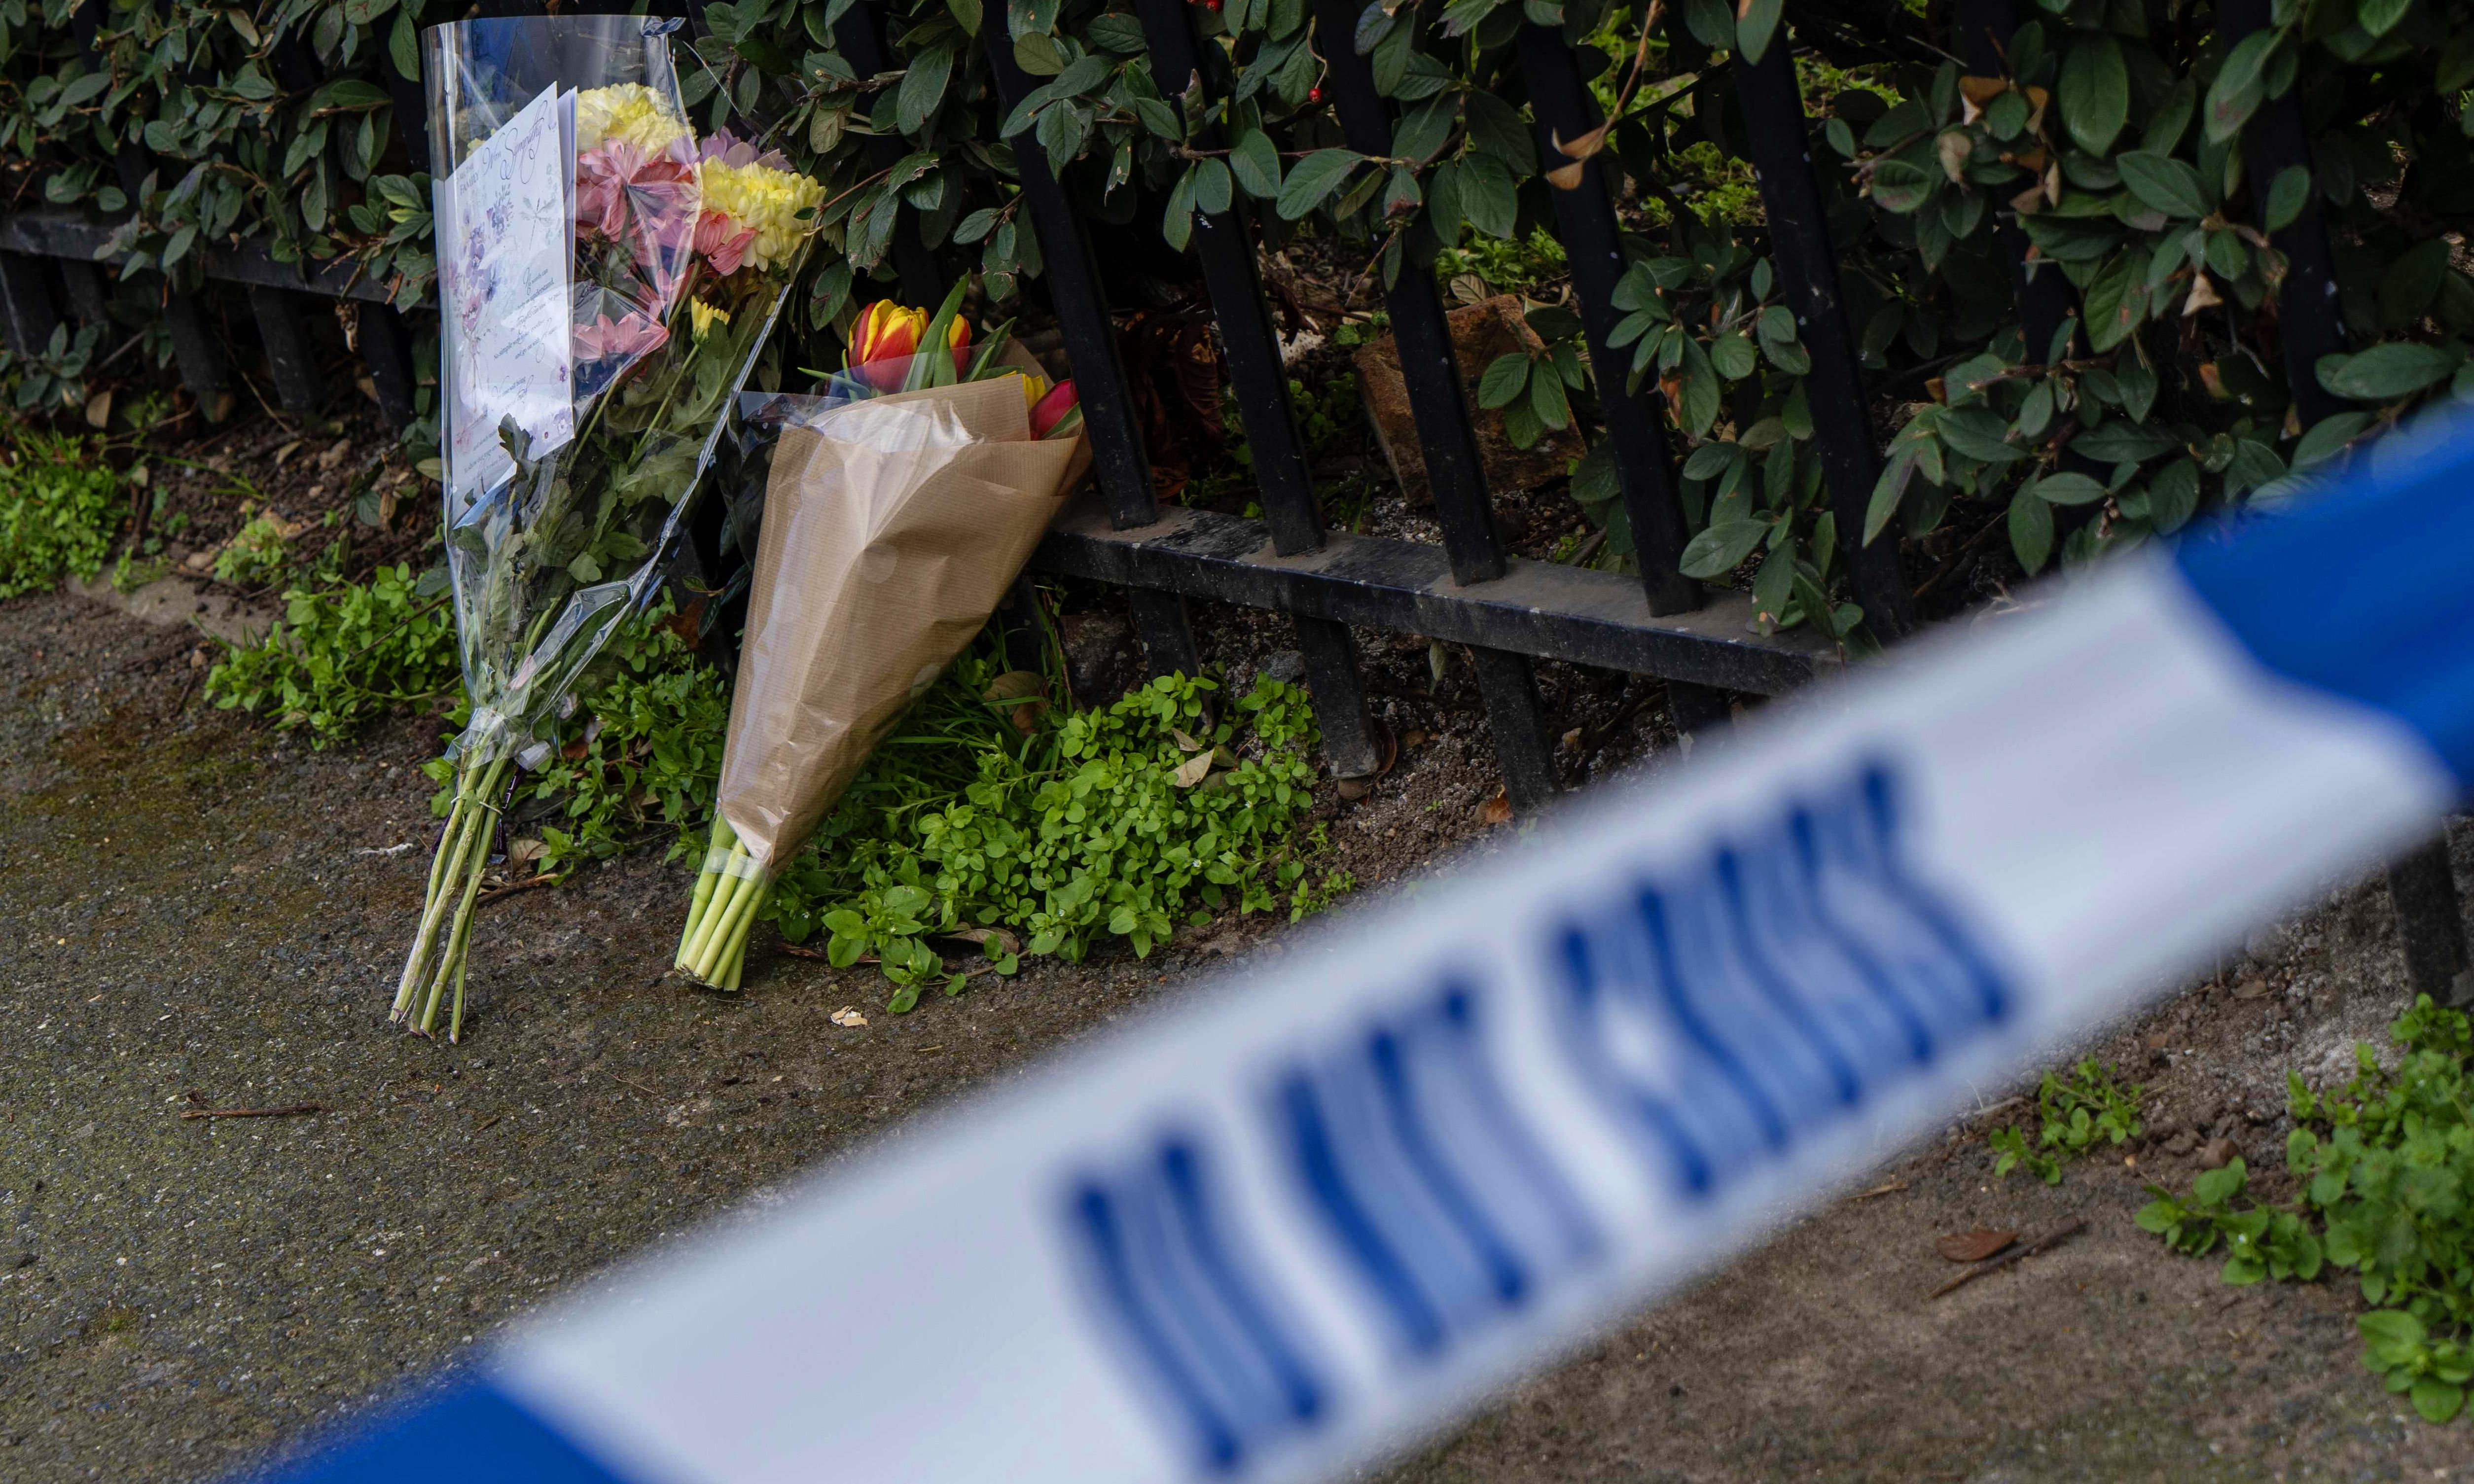 Knife crime rising more steeply outside London, police figures show